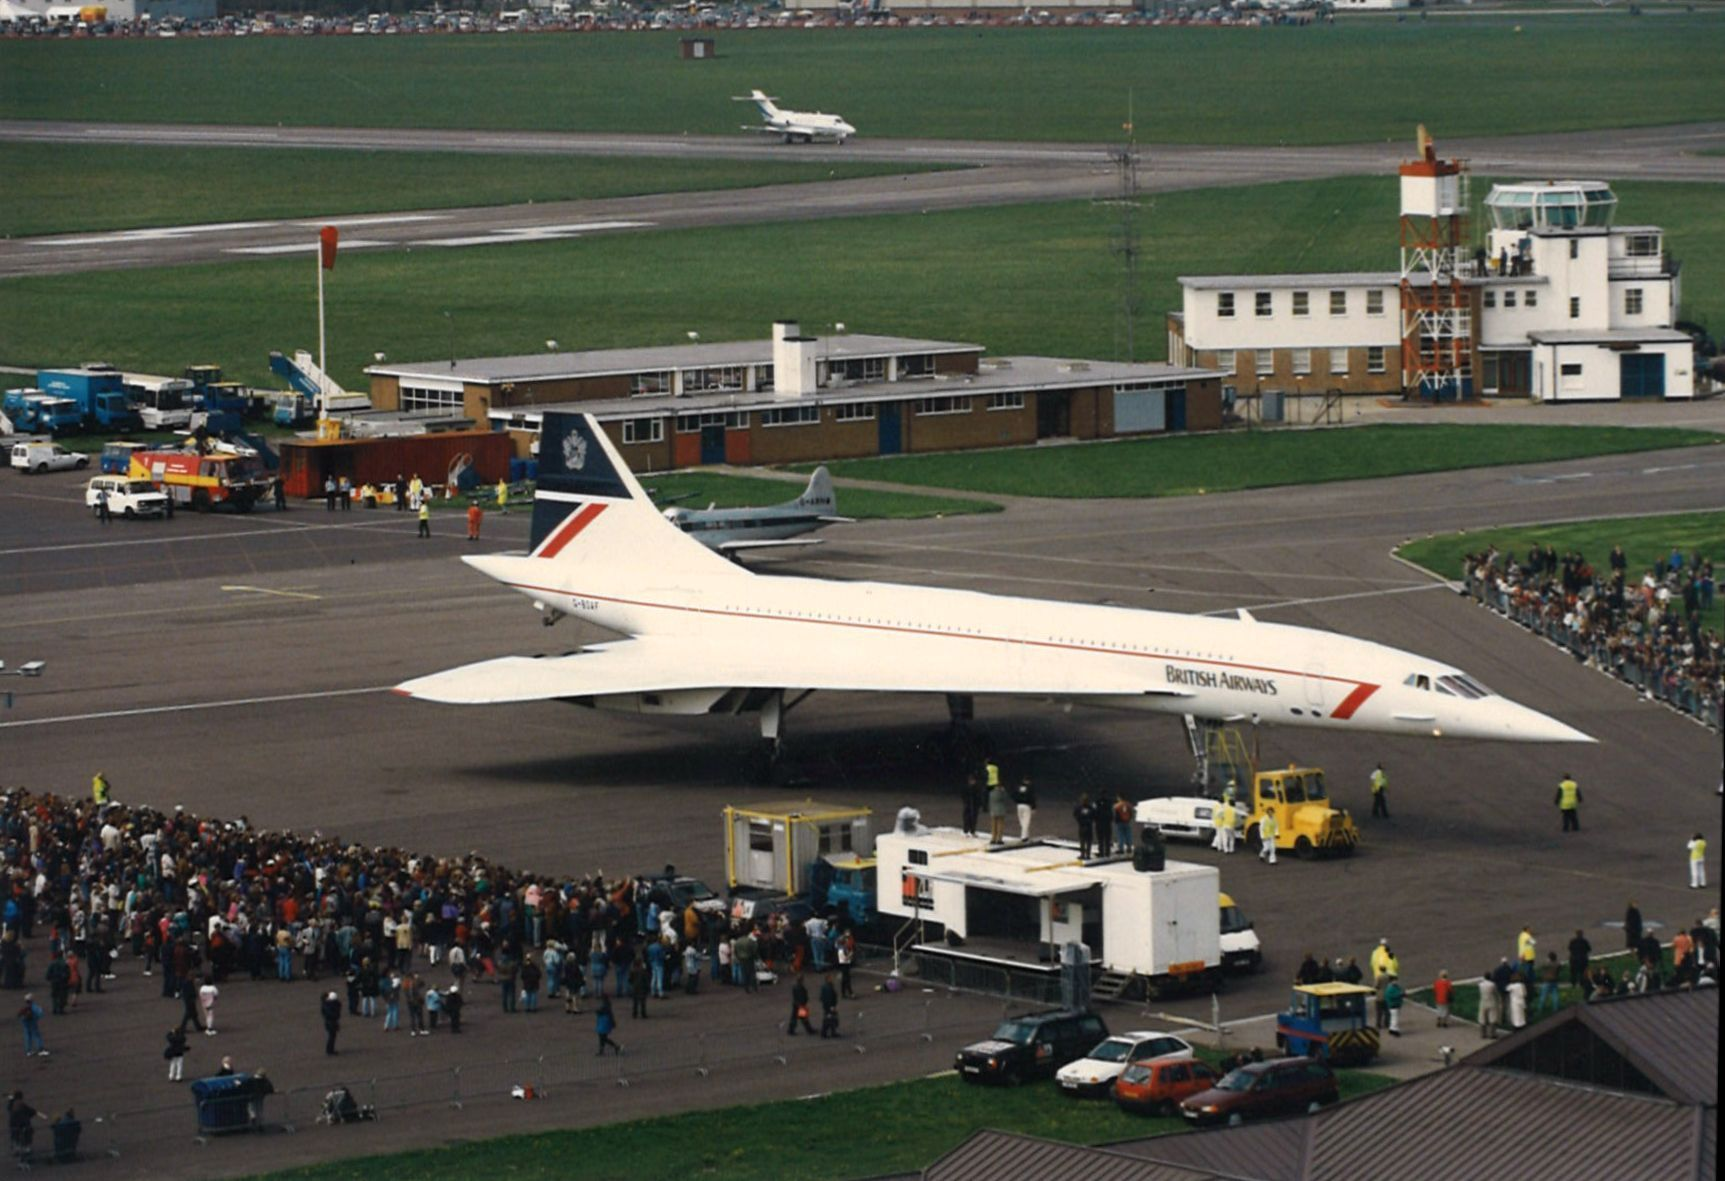 Concorde's visits to Bournemouth Airport